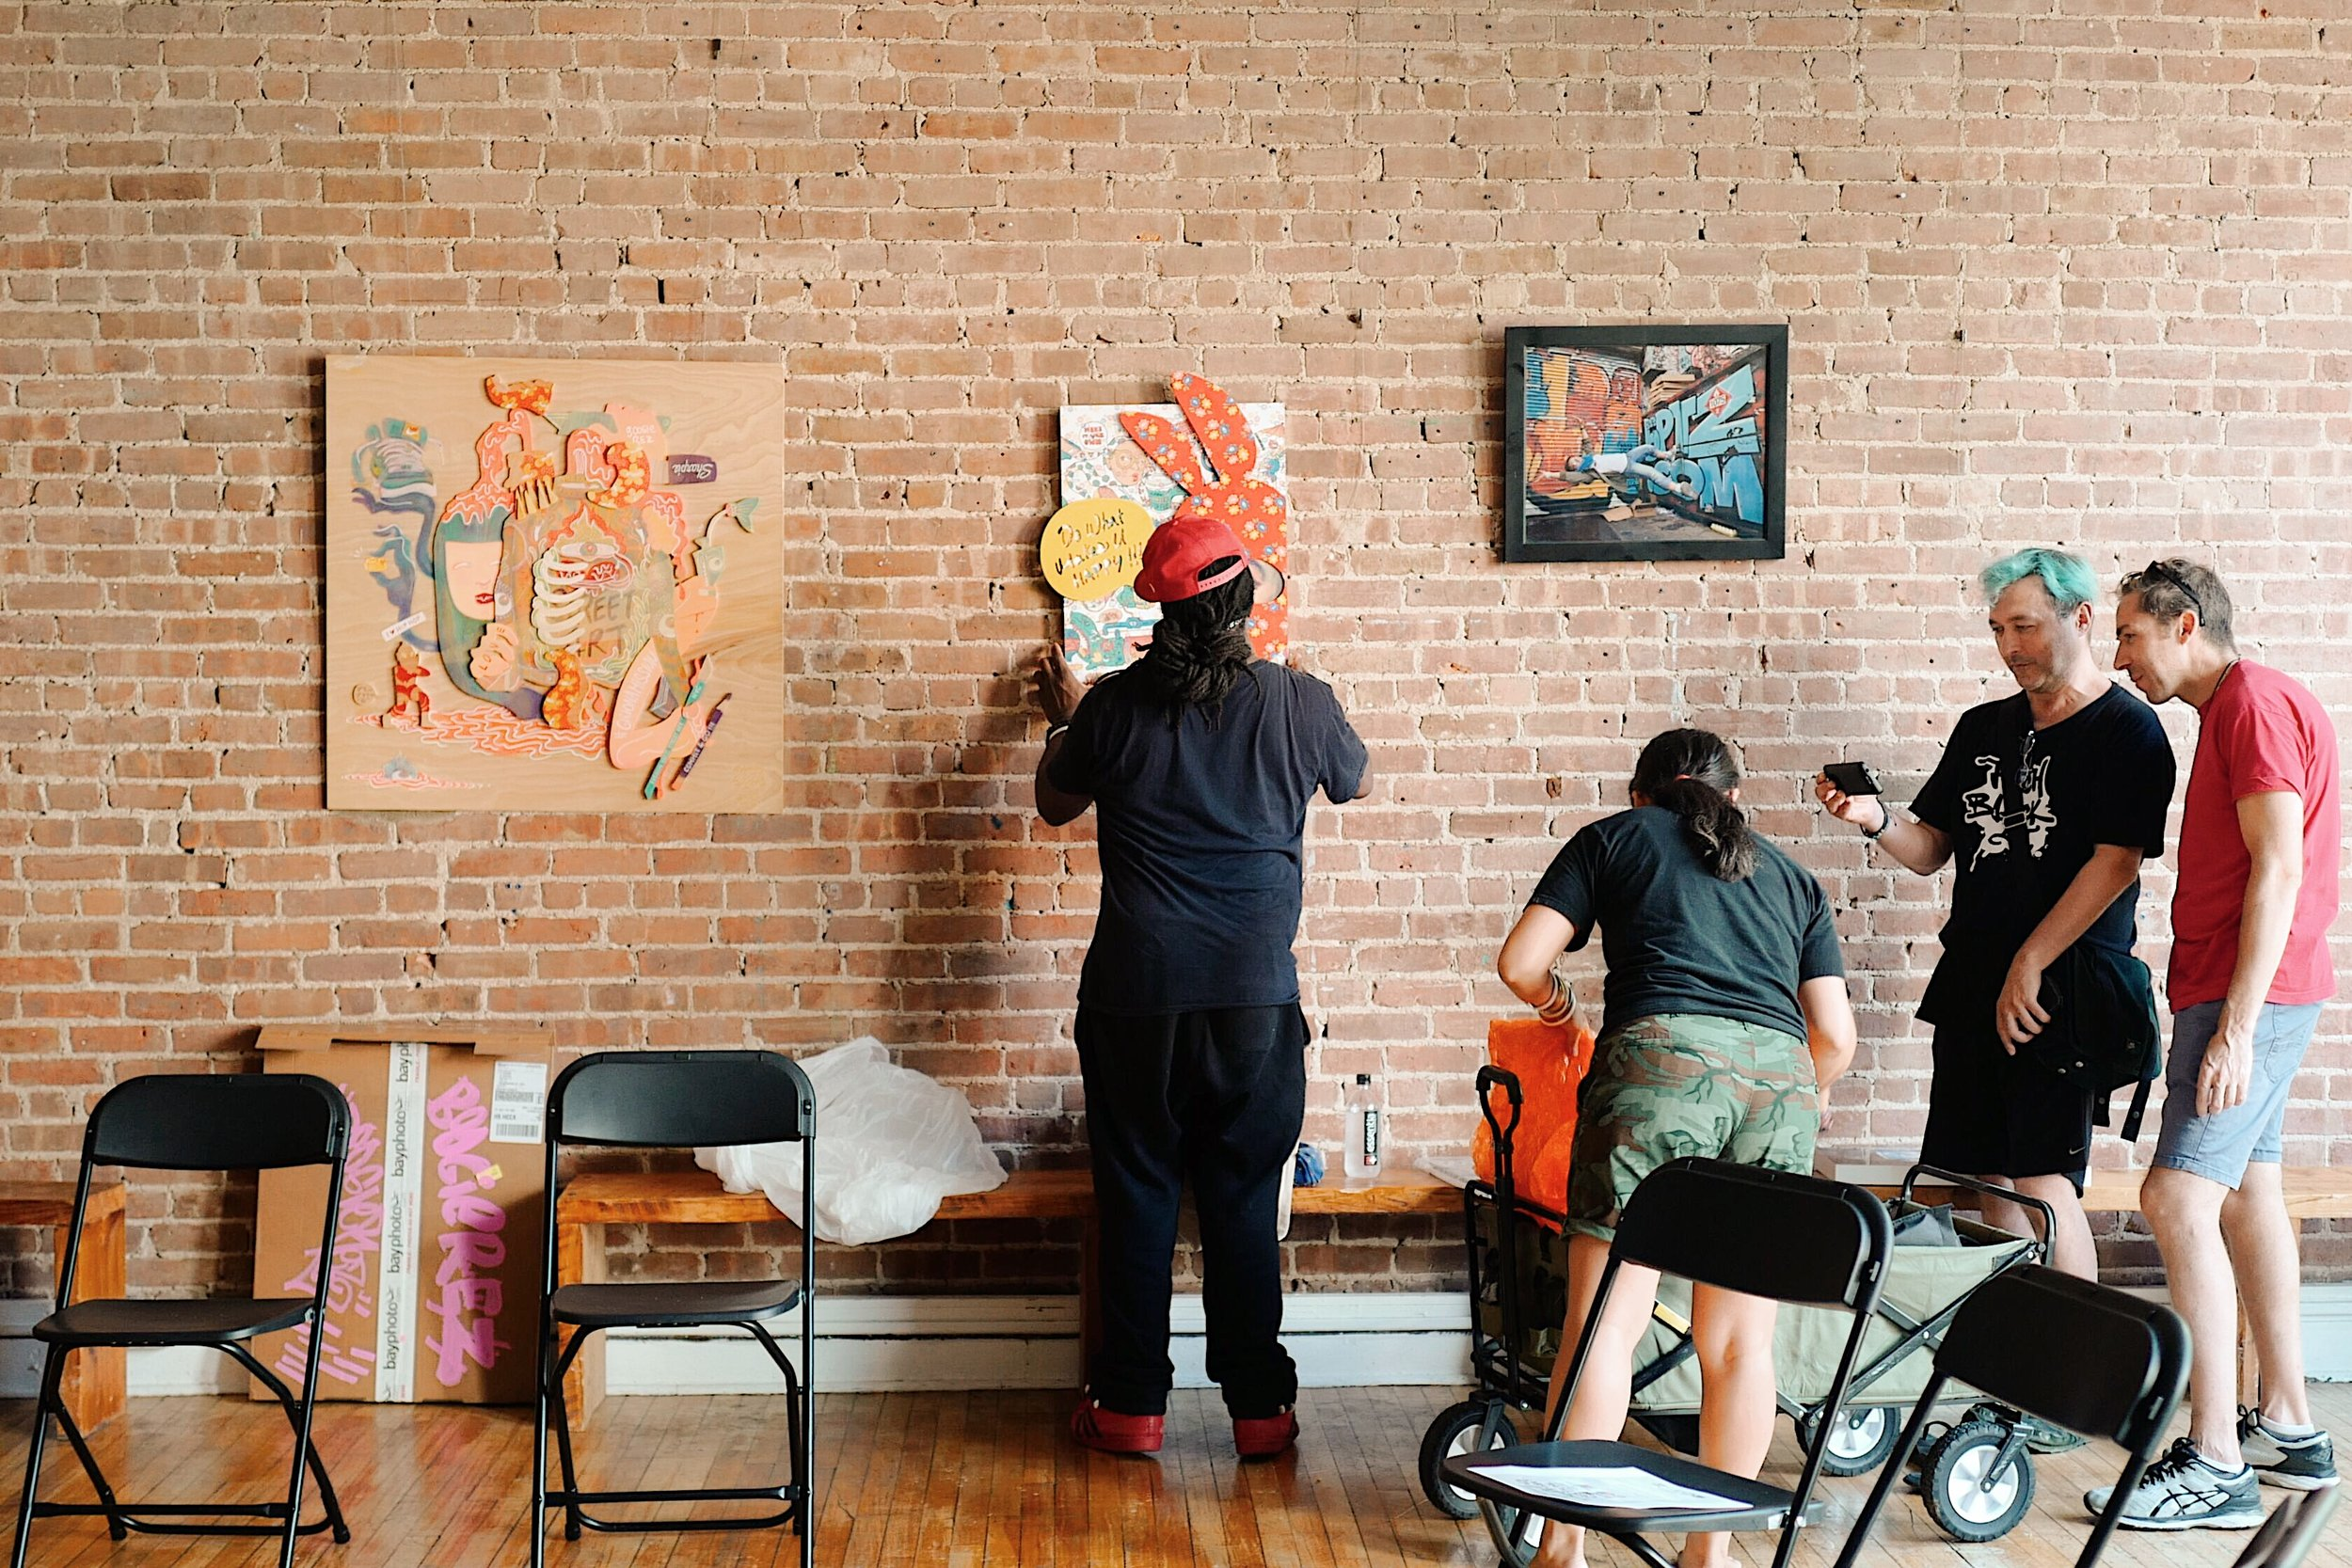 Before the event, artists Boogie and Rezones setting up their artworks.